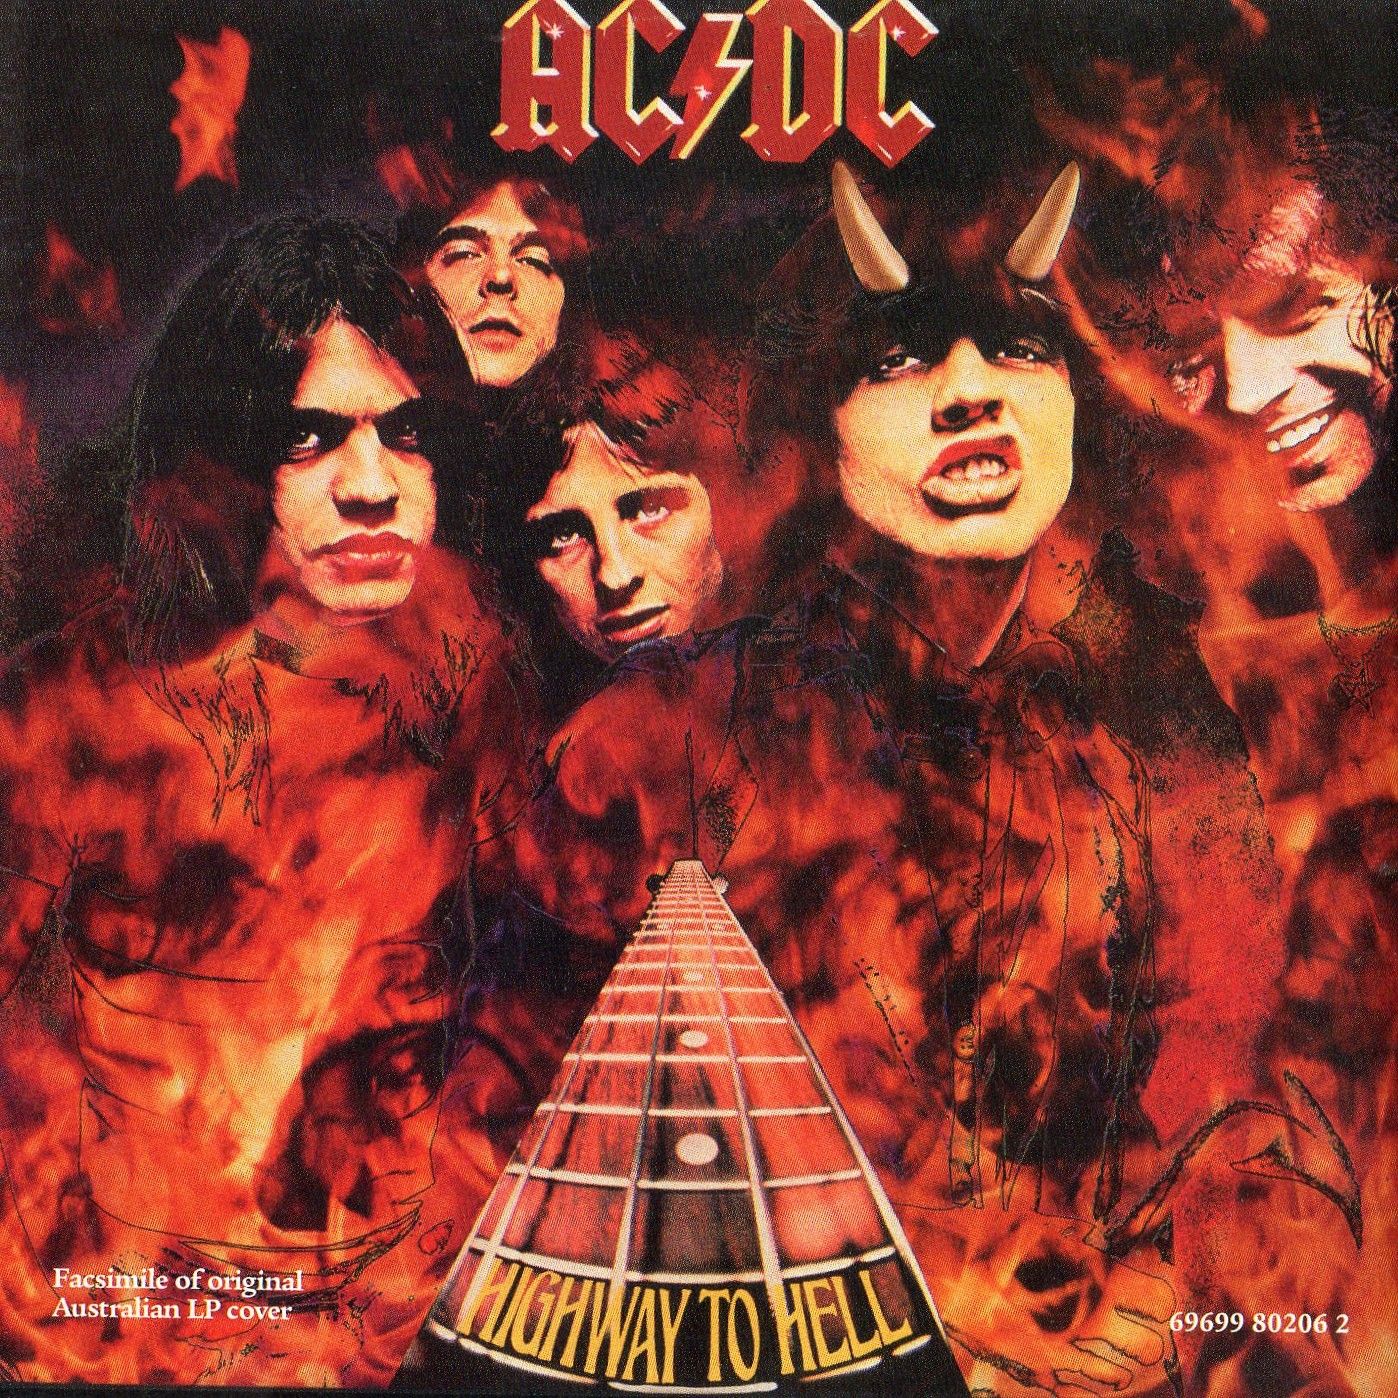 download Acdc Highway To Hell wallpaper 43916 [1398x1398] for 1398x1398